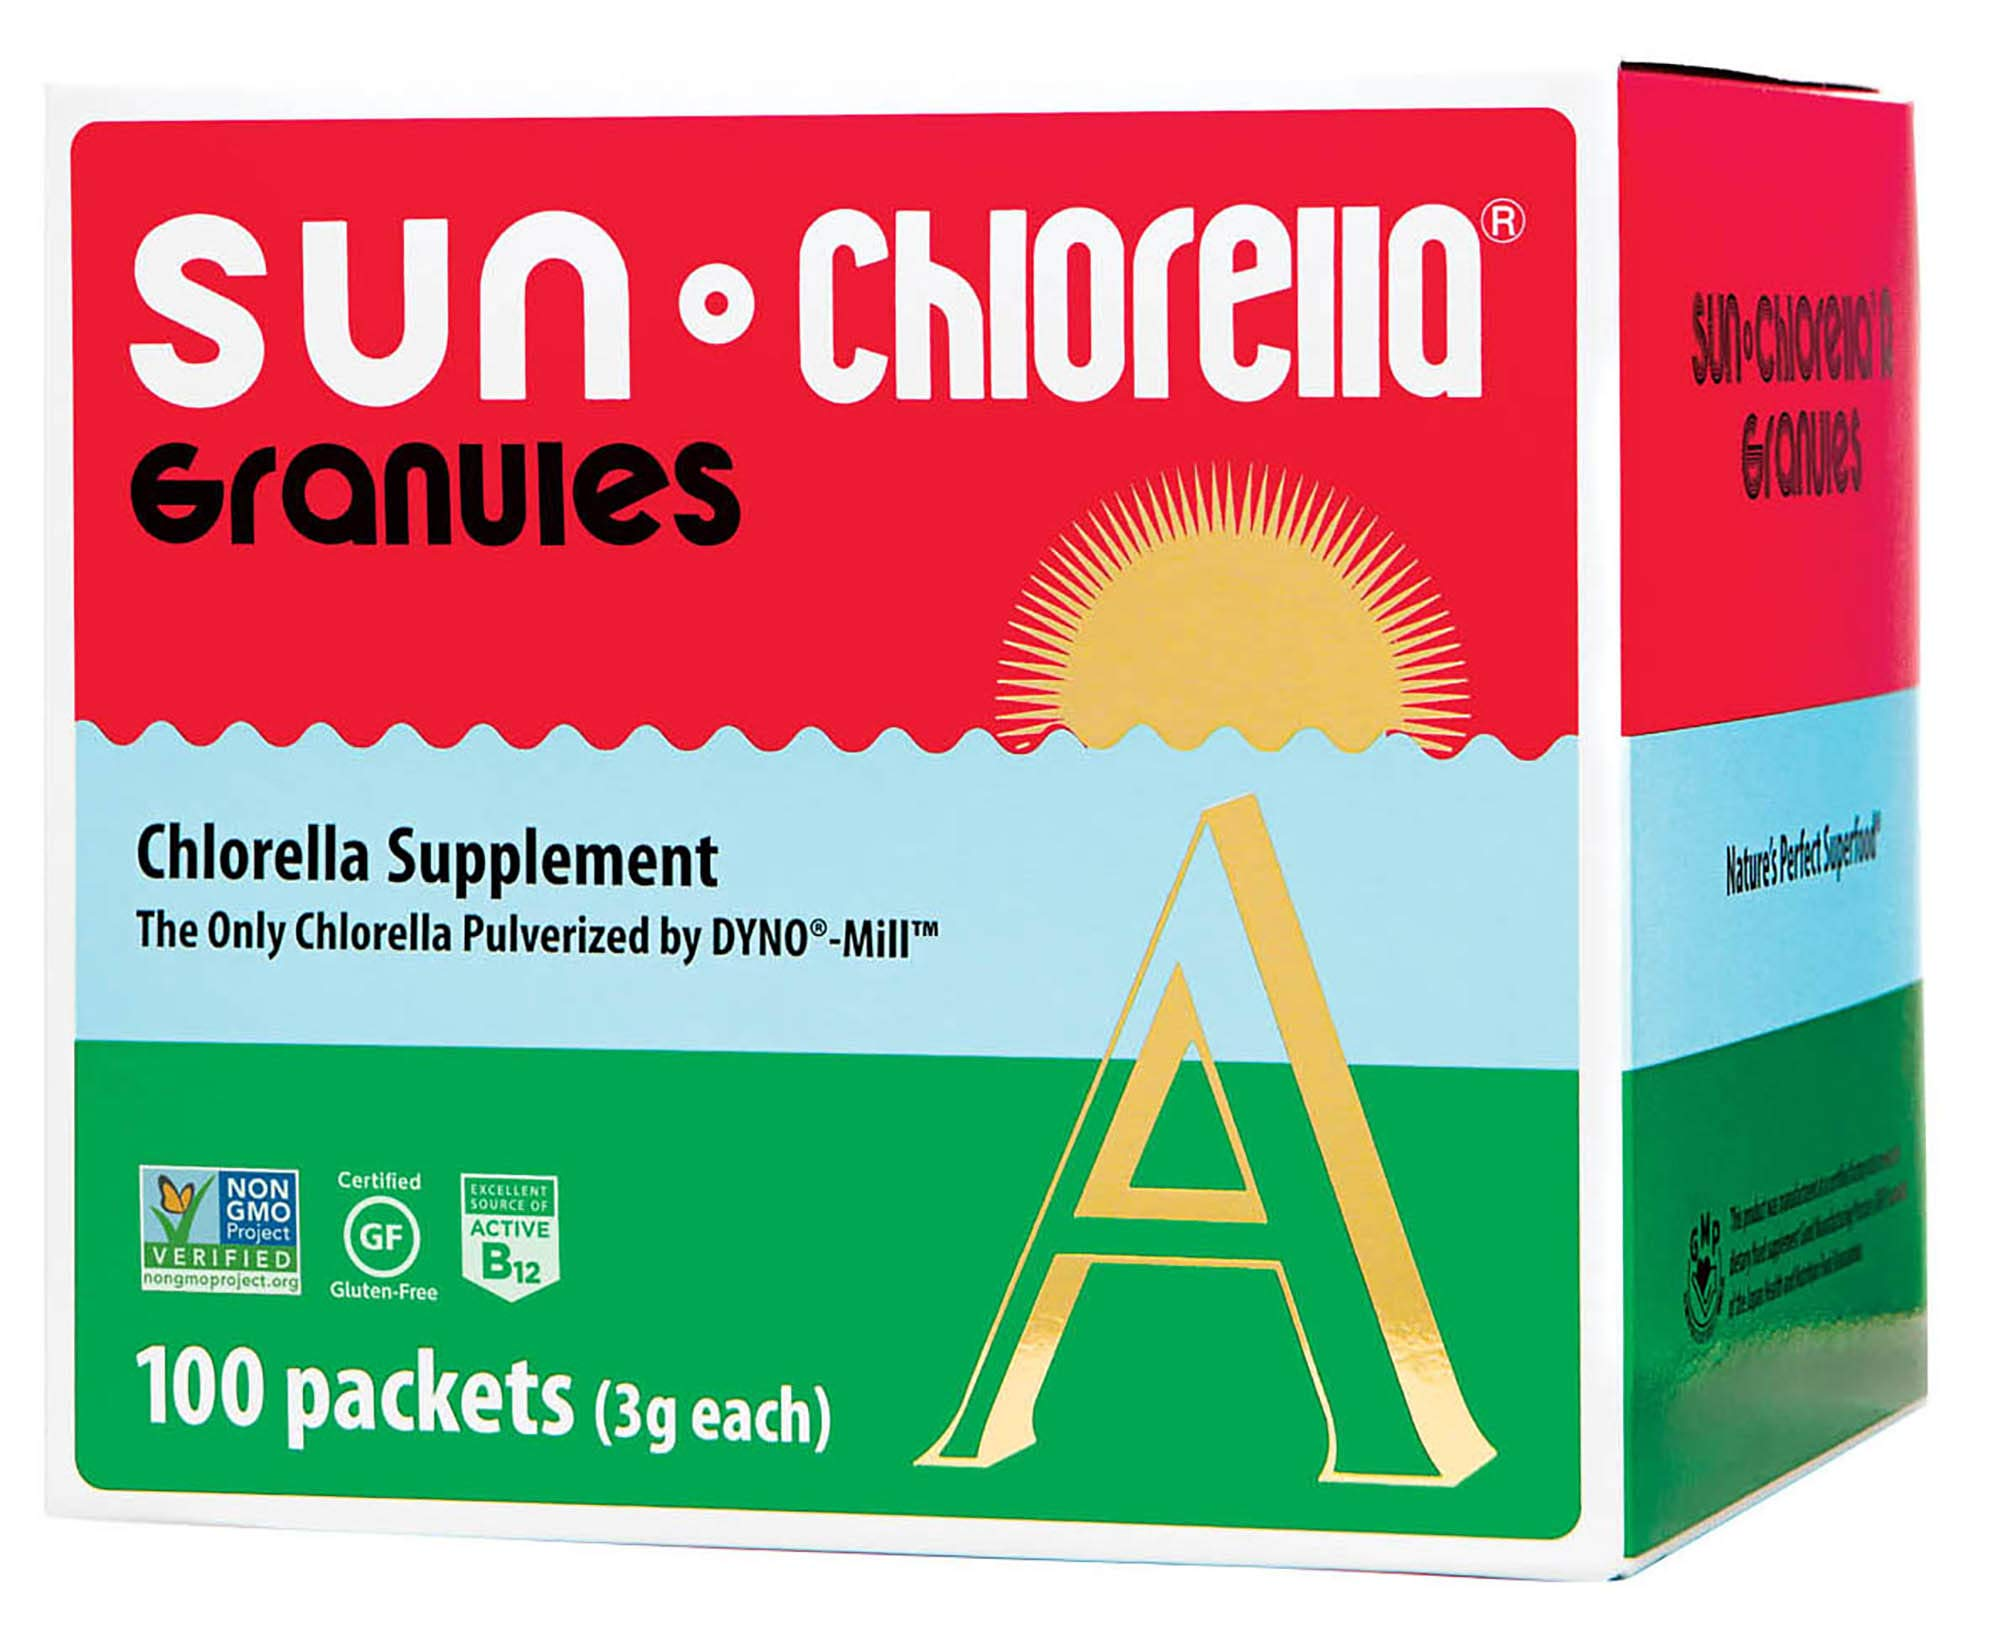 SUN CHLORELLA Chlorella Supplement Granules - Vegan-Friendly Superfood Supplement Enriched with Vitamin A, D, B2, B6 & Omega-3 and Omega-6 (3g - 100 Packets)